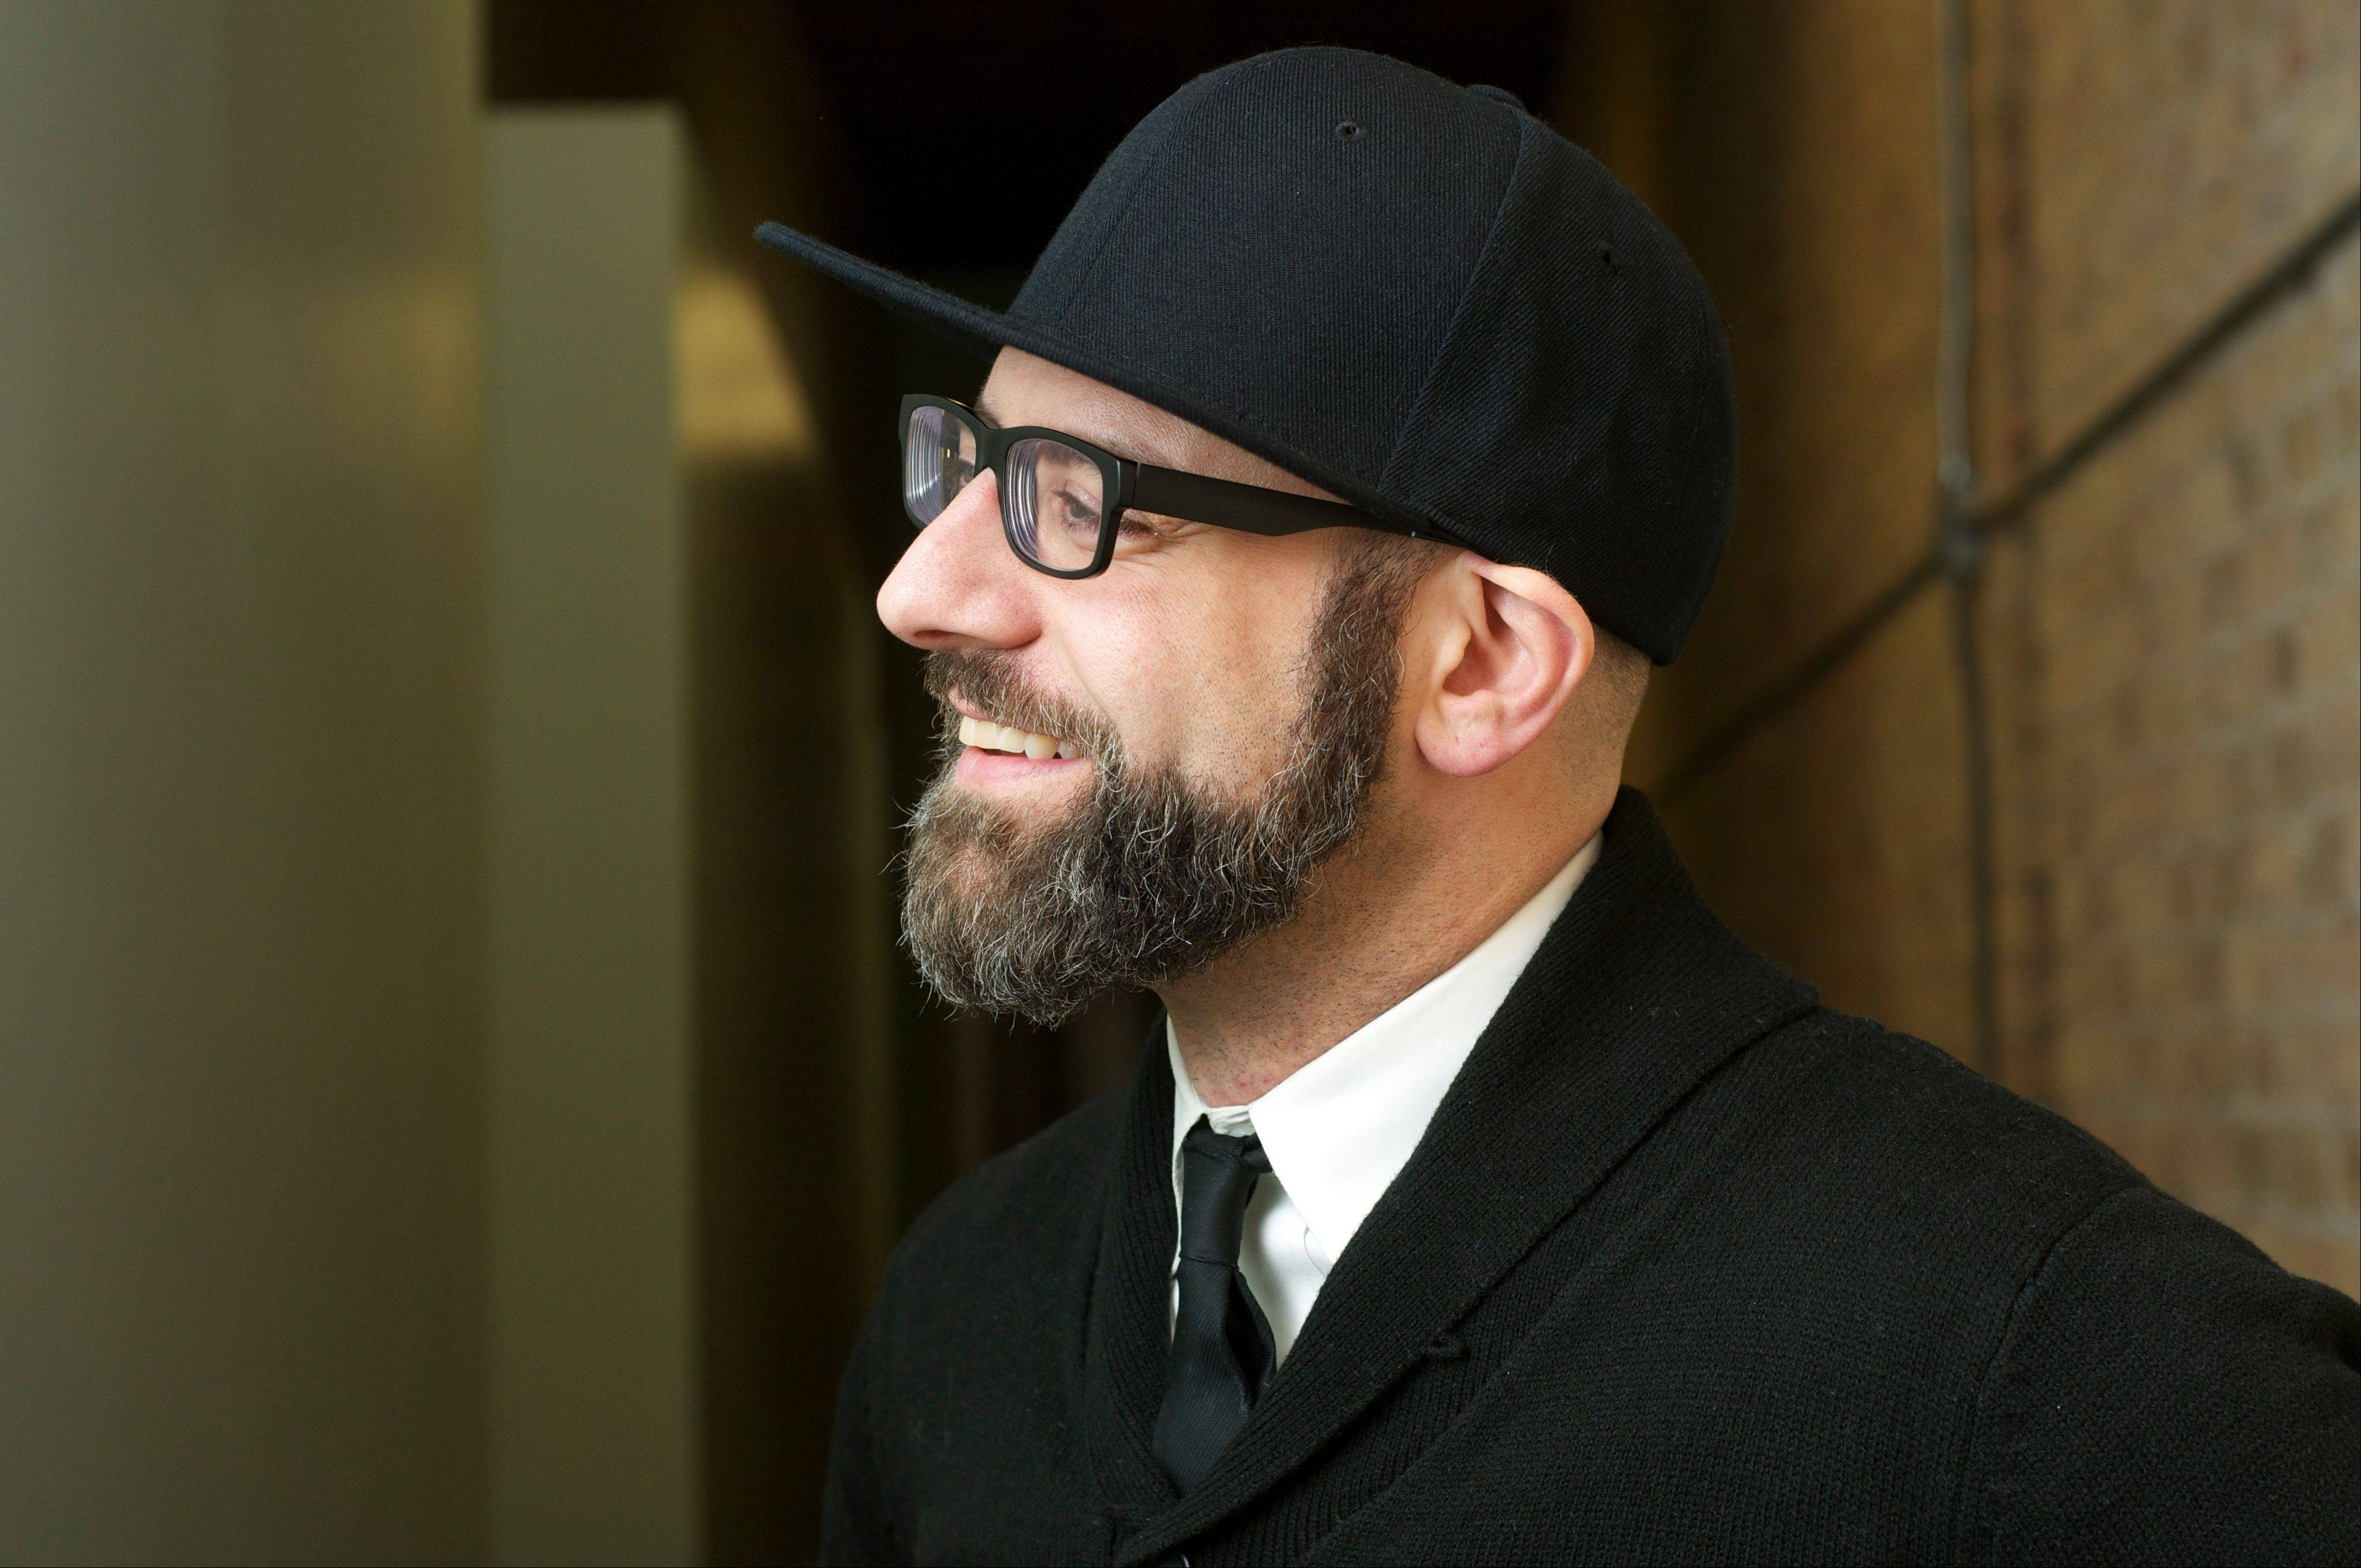 Poet Kevin Coval is appearing at Oakton Community College.